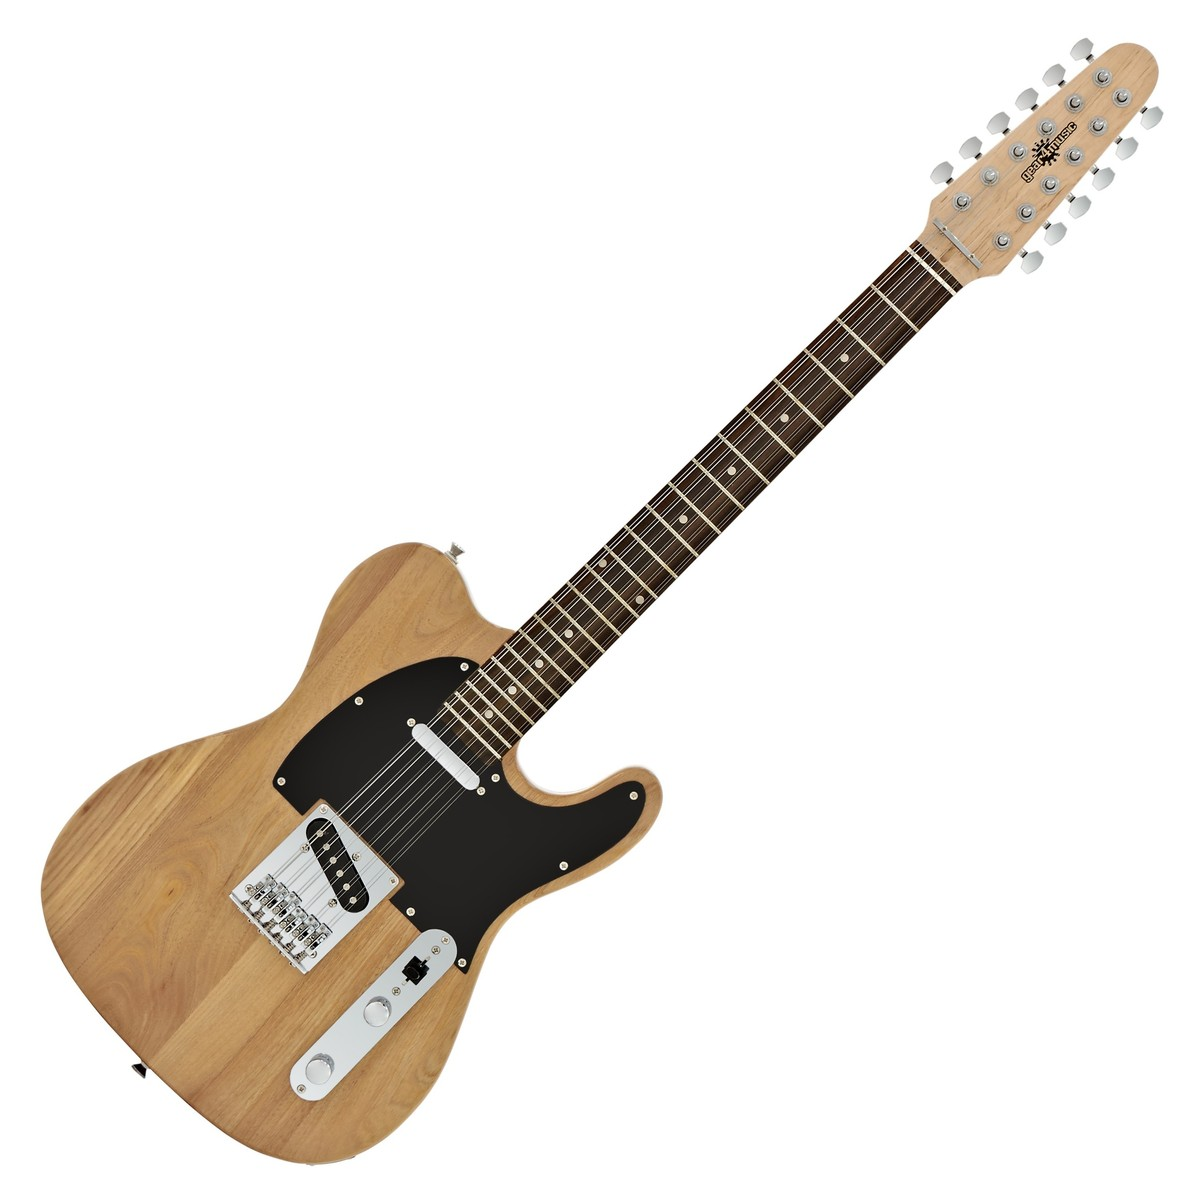 Electric 12 String Guitar : knoxville deluxe 12 string electric guitar by gear4music b stock at gear4music ~ Hamham.info Haus und Dekorationen